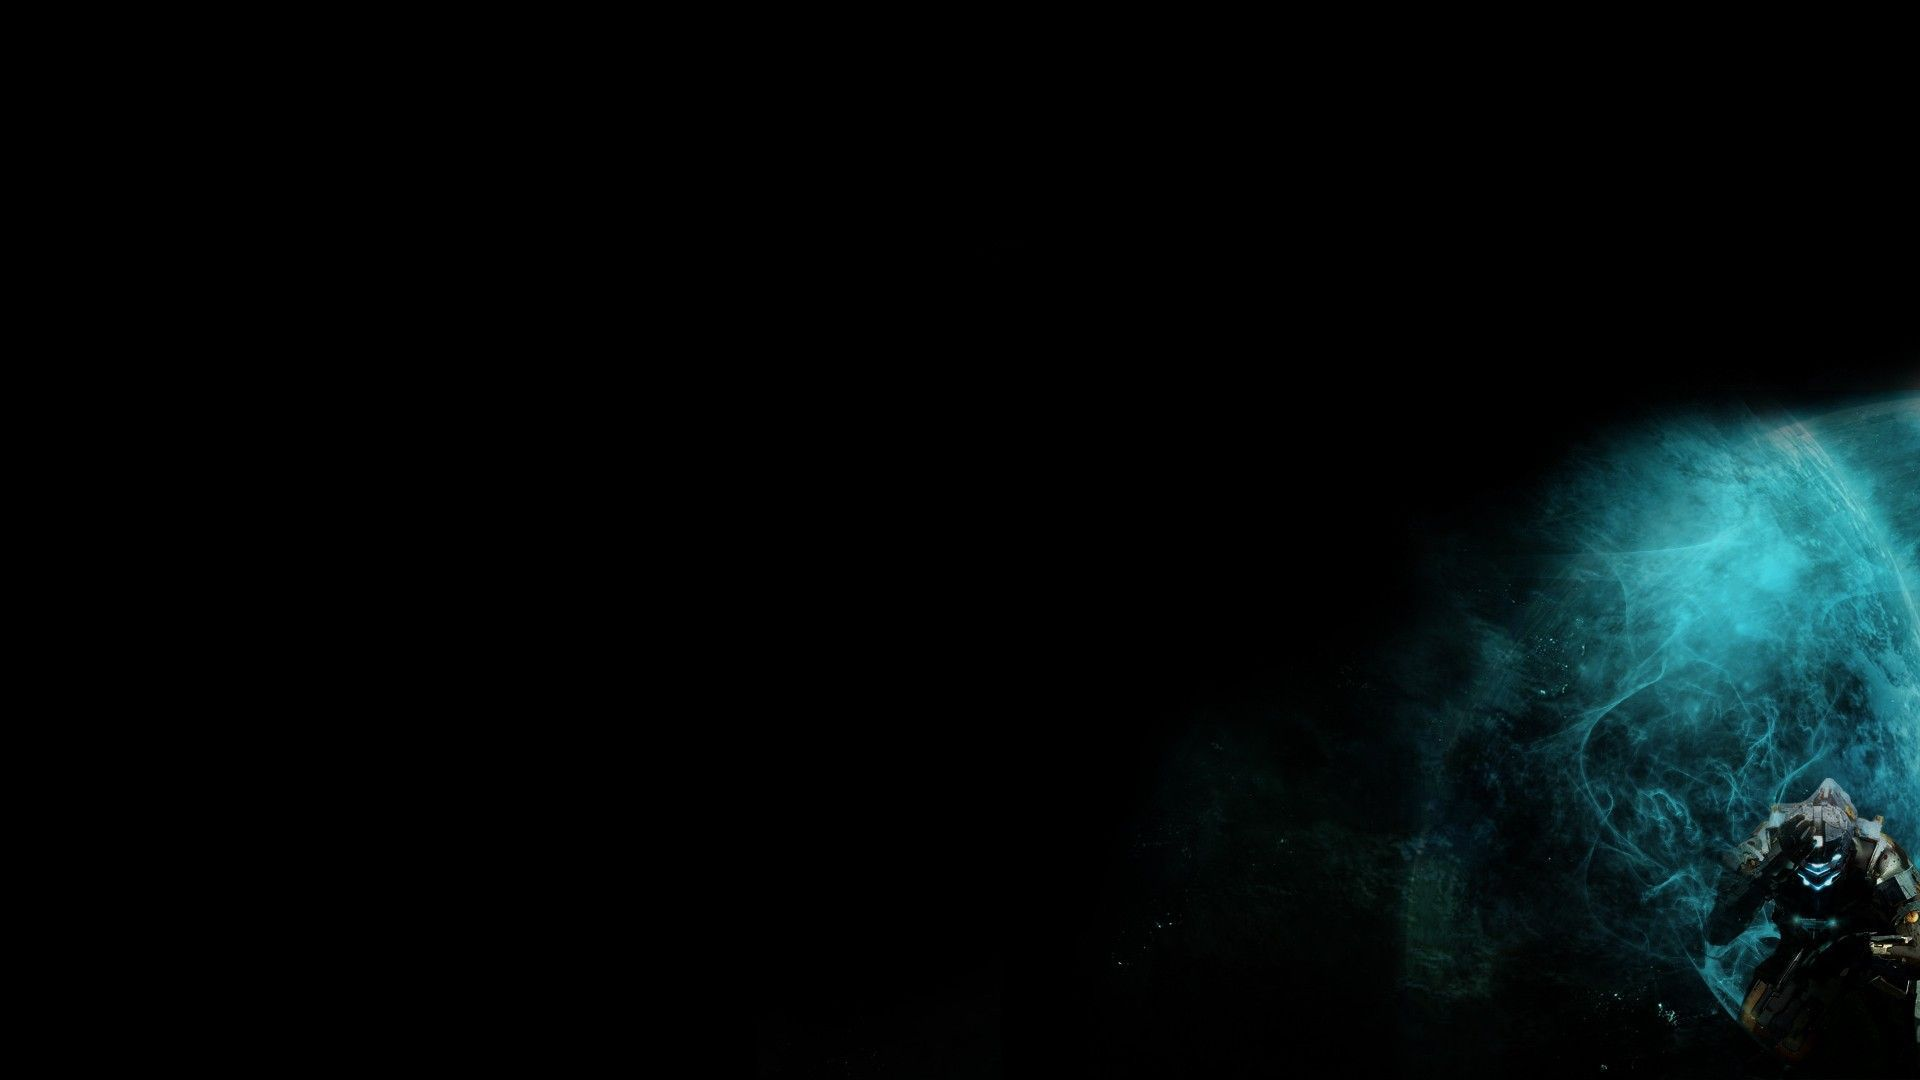 Dark Space Wallpapers WallpapersIn4knet 1920x1080